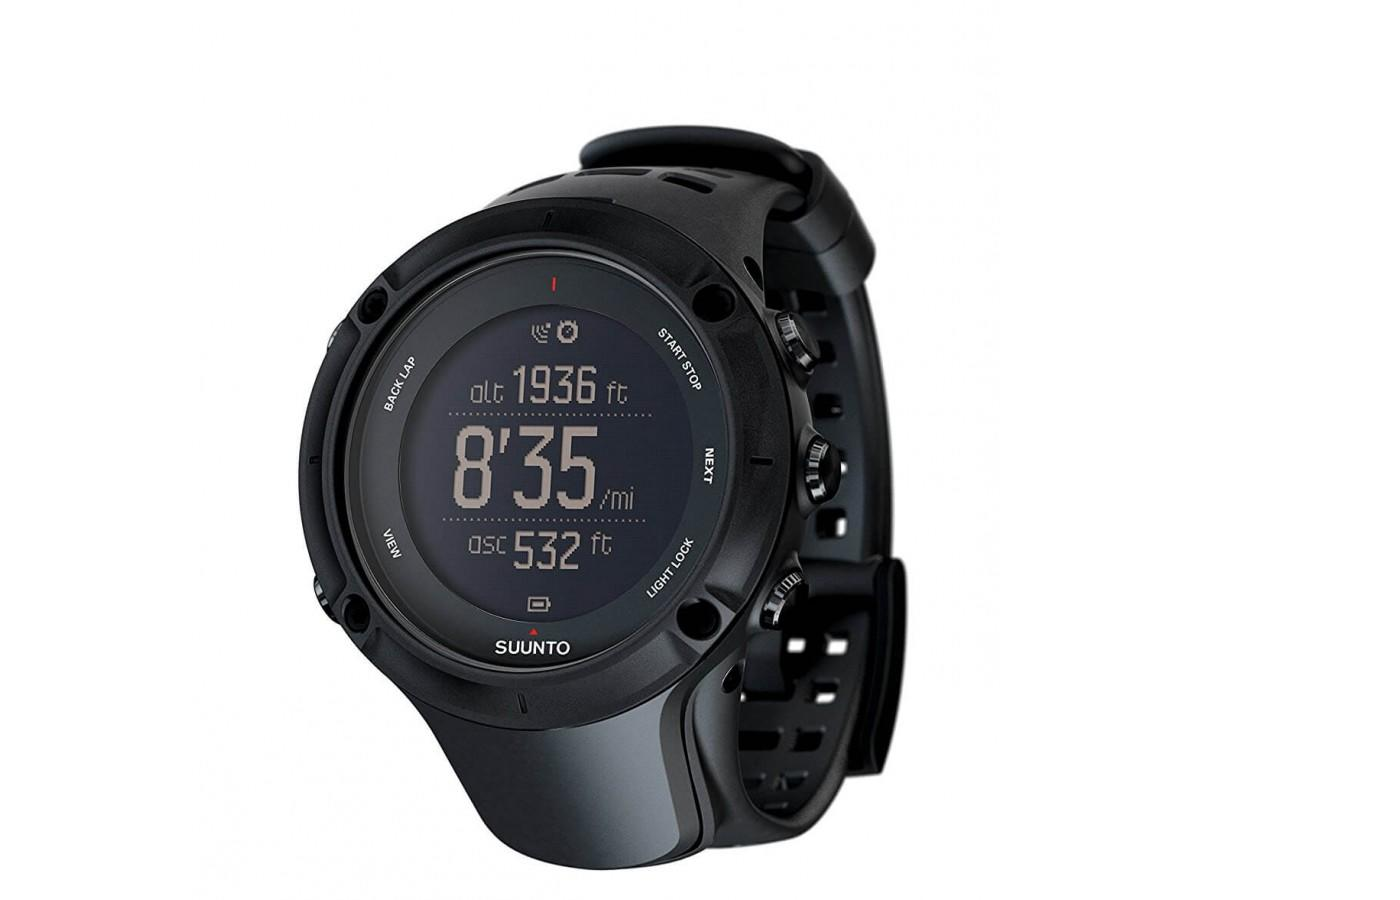 Suunto Ambit3 Peak tracks a variety of activities